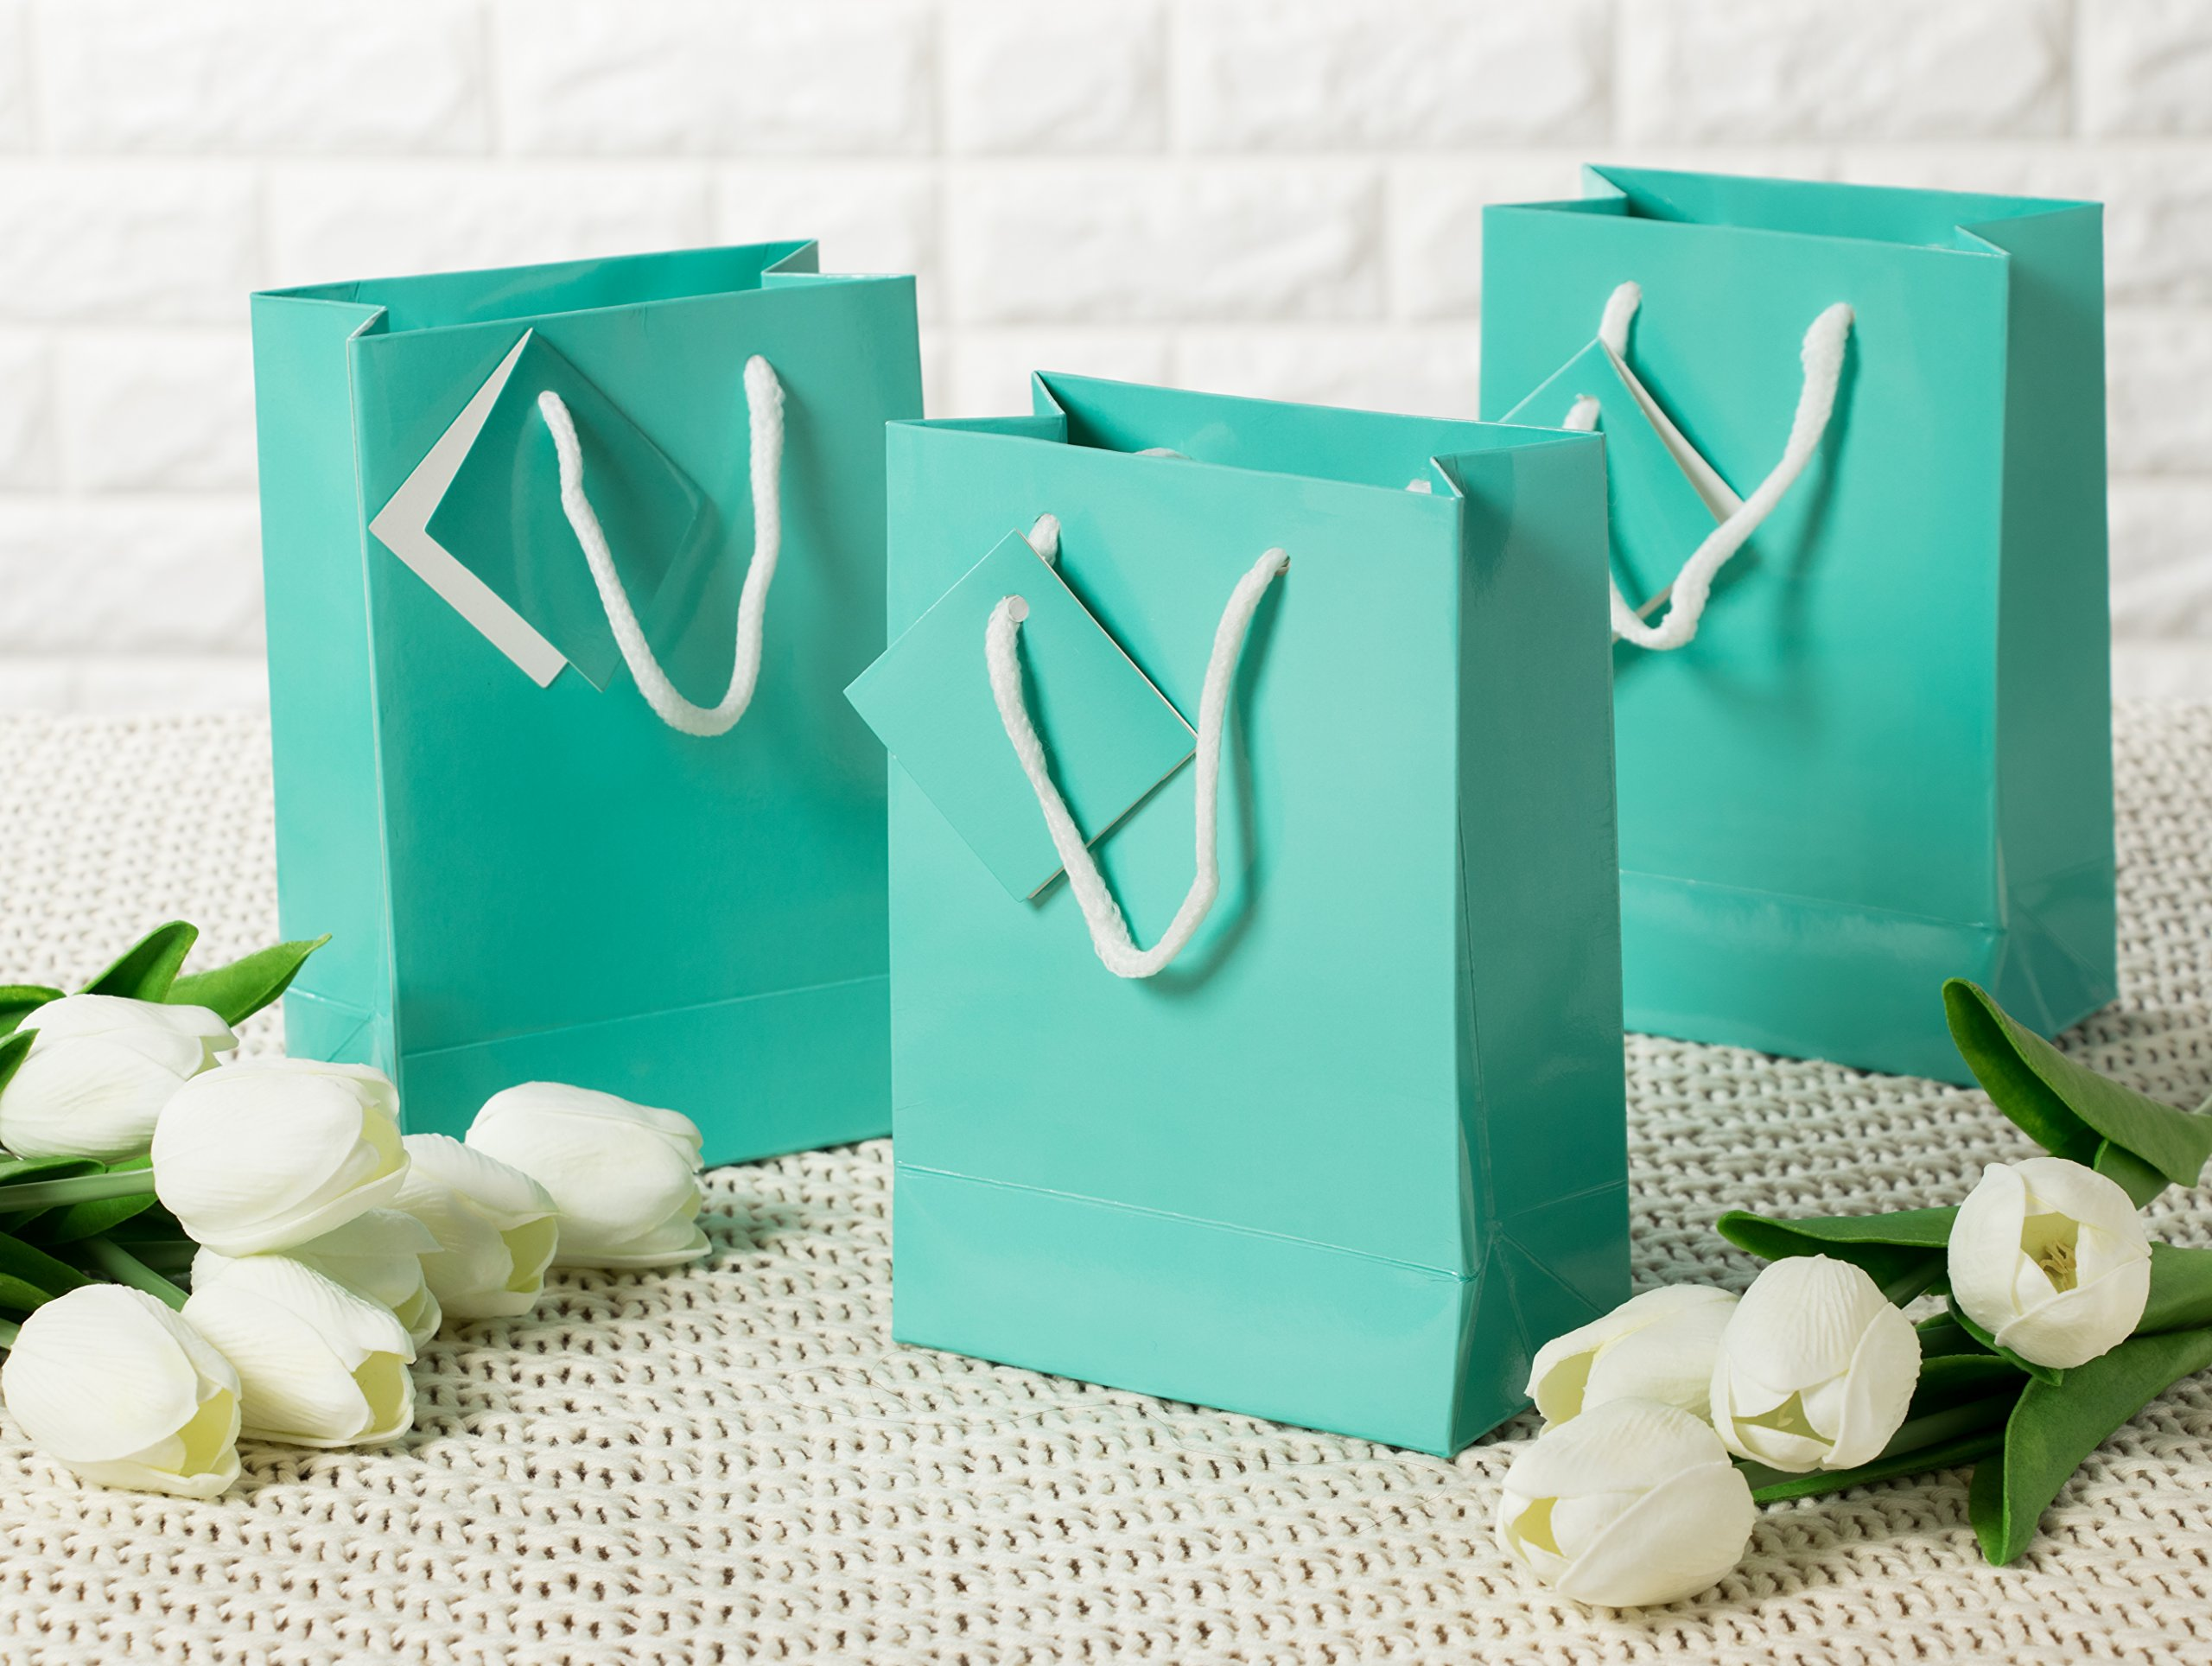 Paper Gift Bag - 20-Pack Small Party Favor Bags, Mini Paper Bags, Tissue Paper Included, Glossy Finish Teal Color, 4.75 x 6.75 x 2.5 inches by Blue Panda (Image #3)